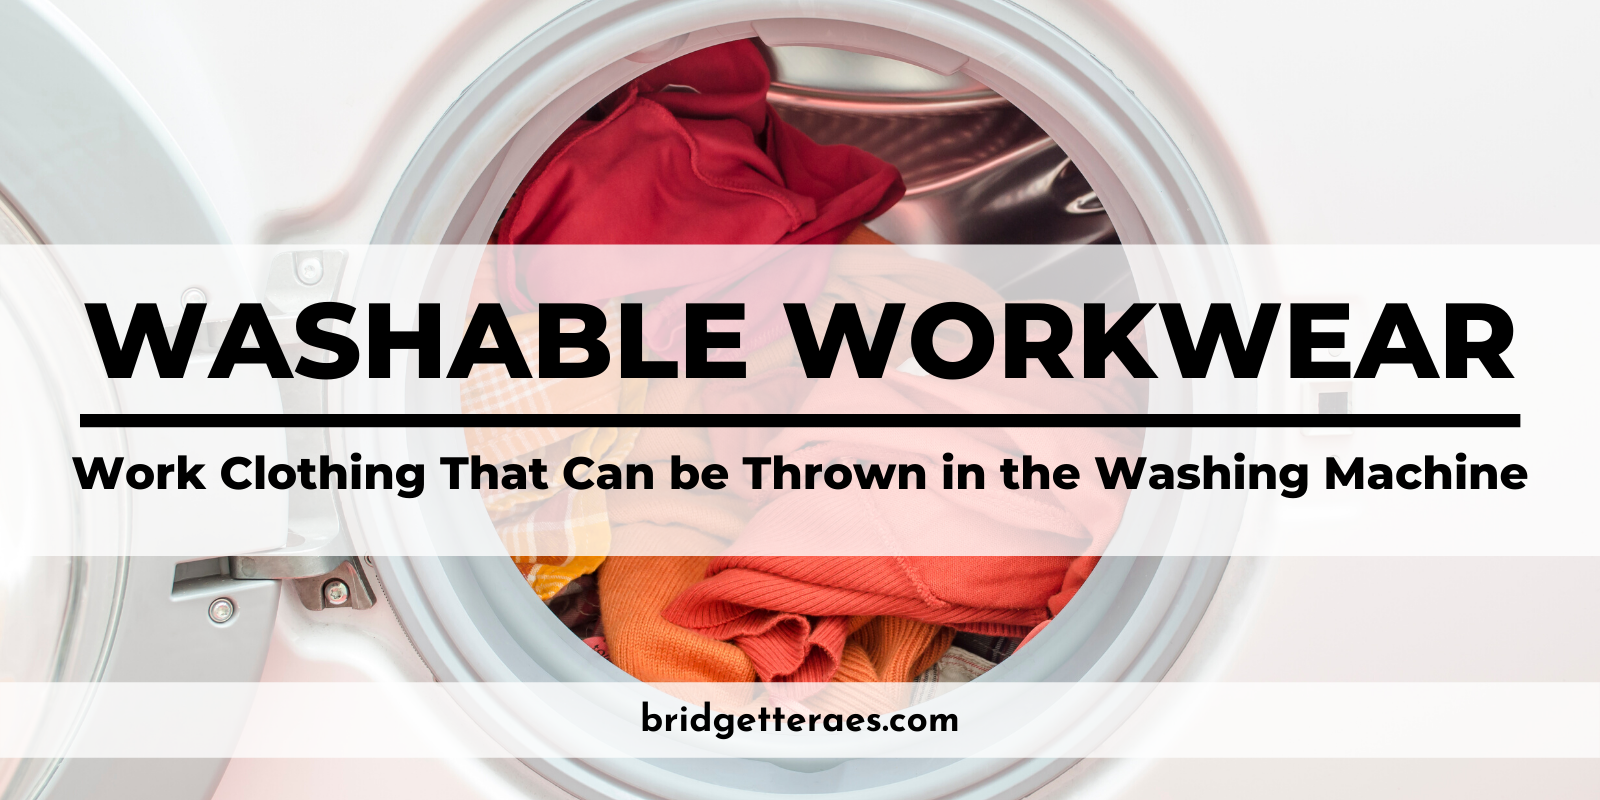 Washable Workwear: Work Clothing That Can be Thrown in the Washing Machine